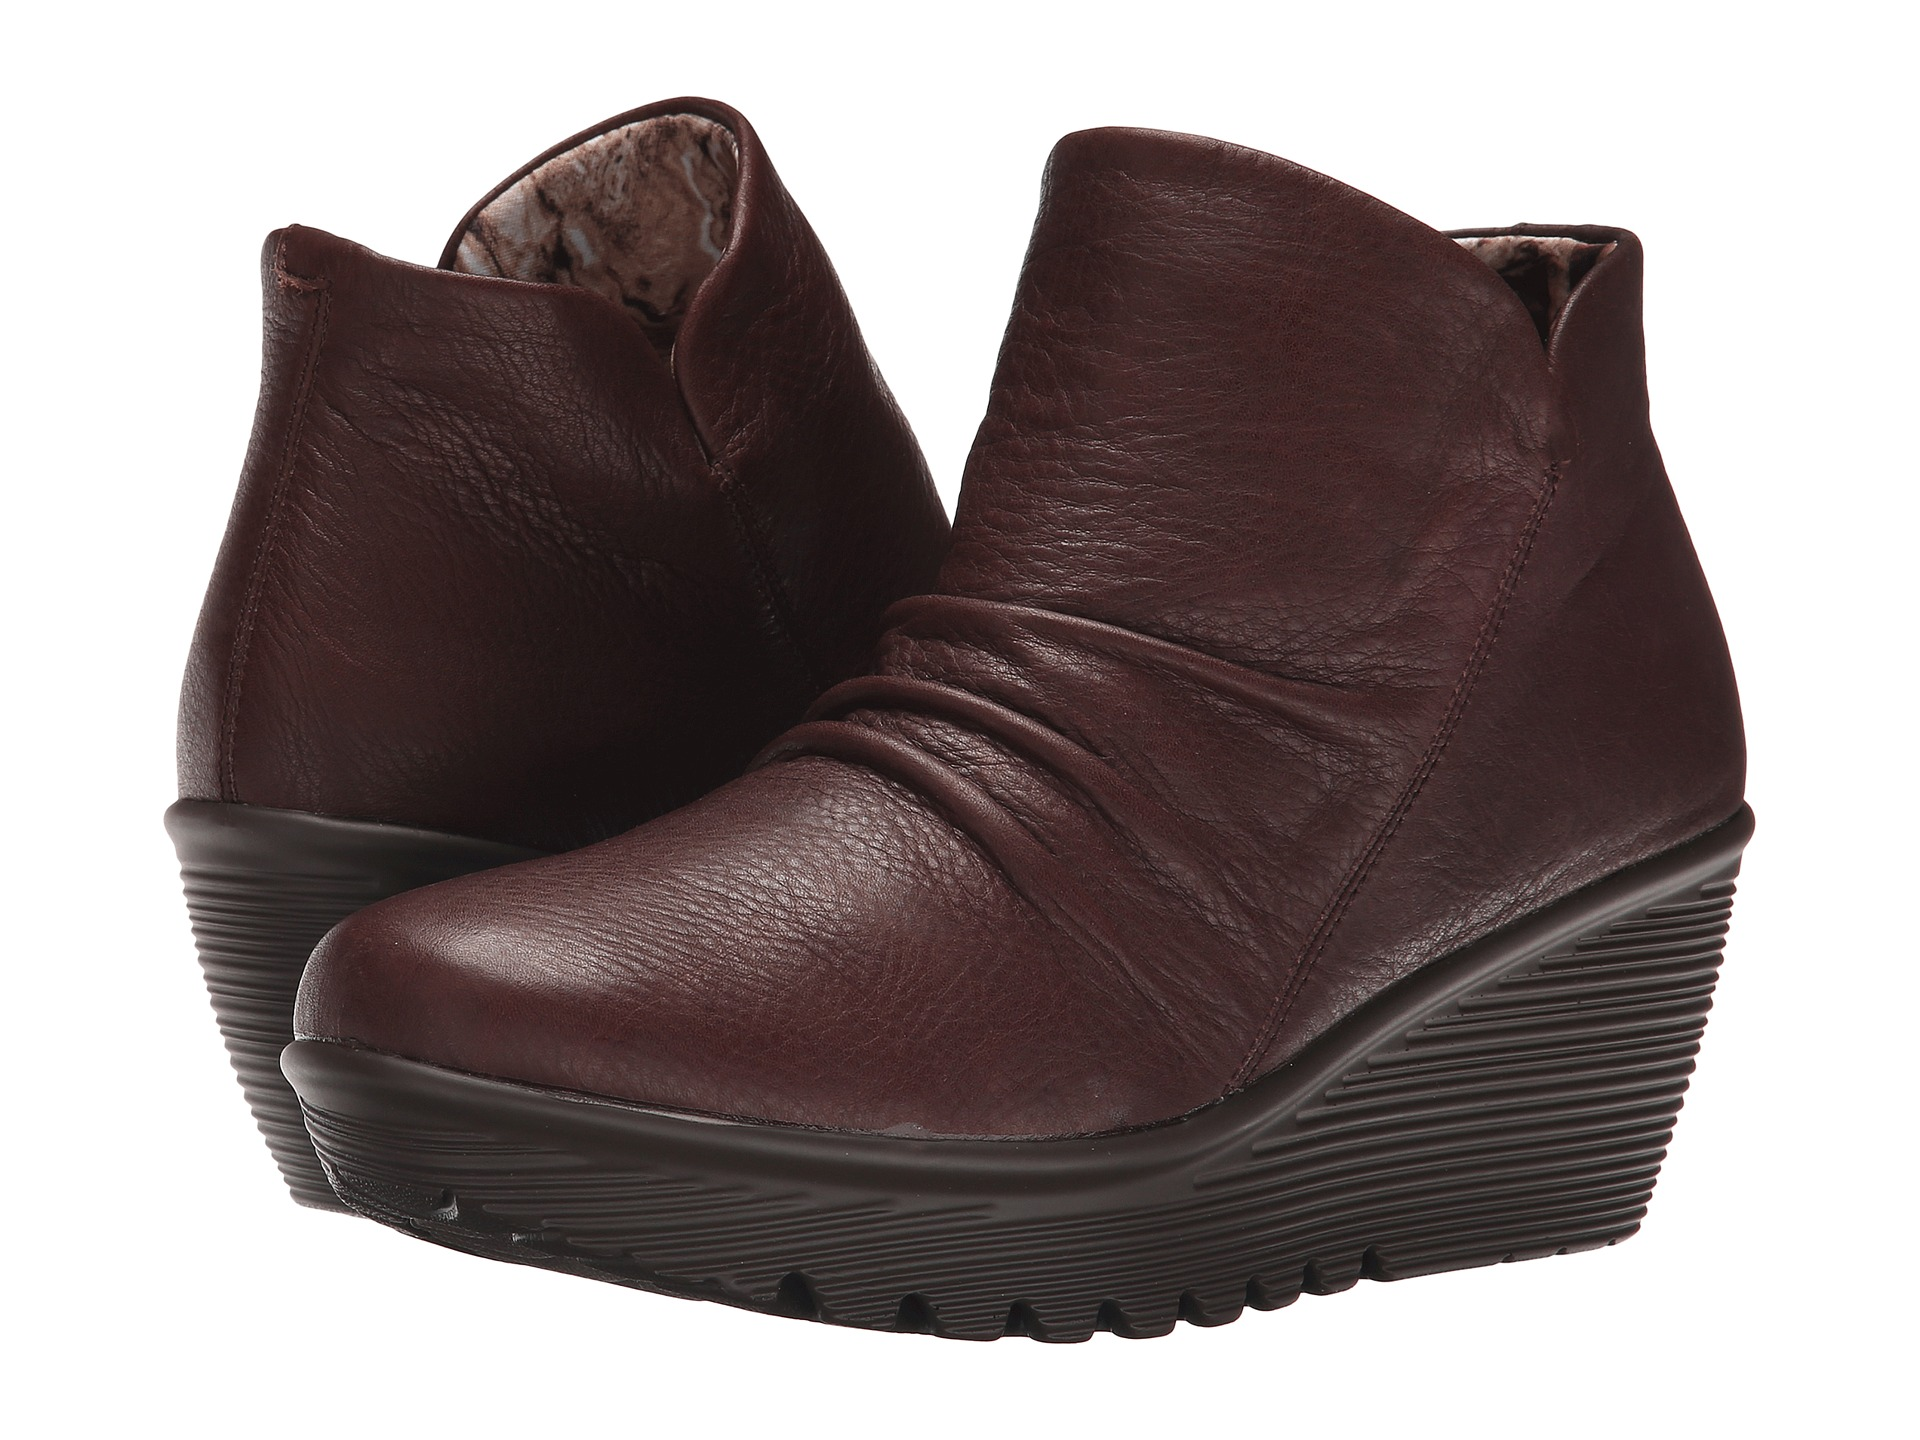 buy skechers wedge boots gt off63 discounted